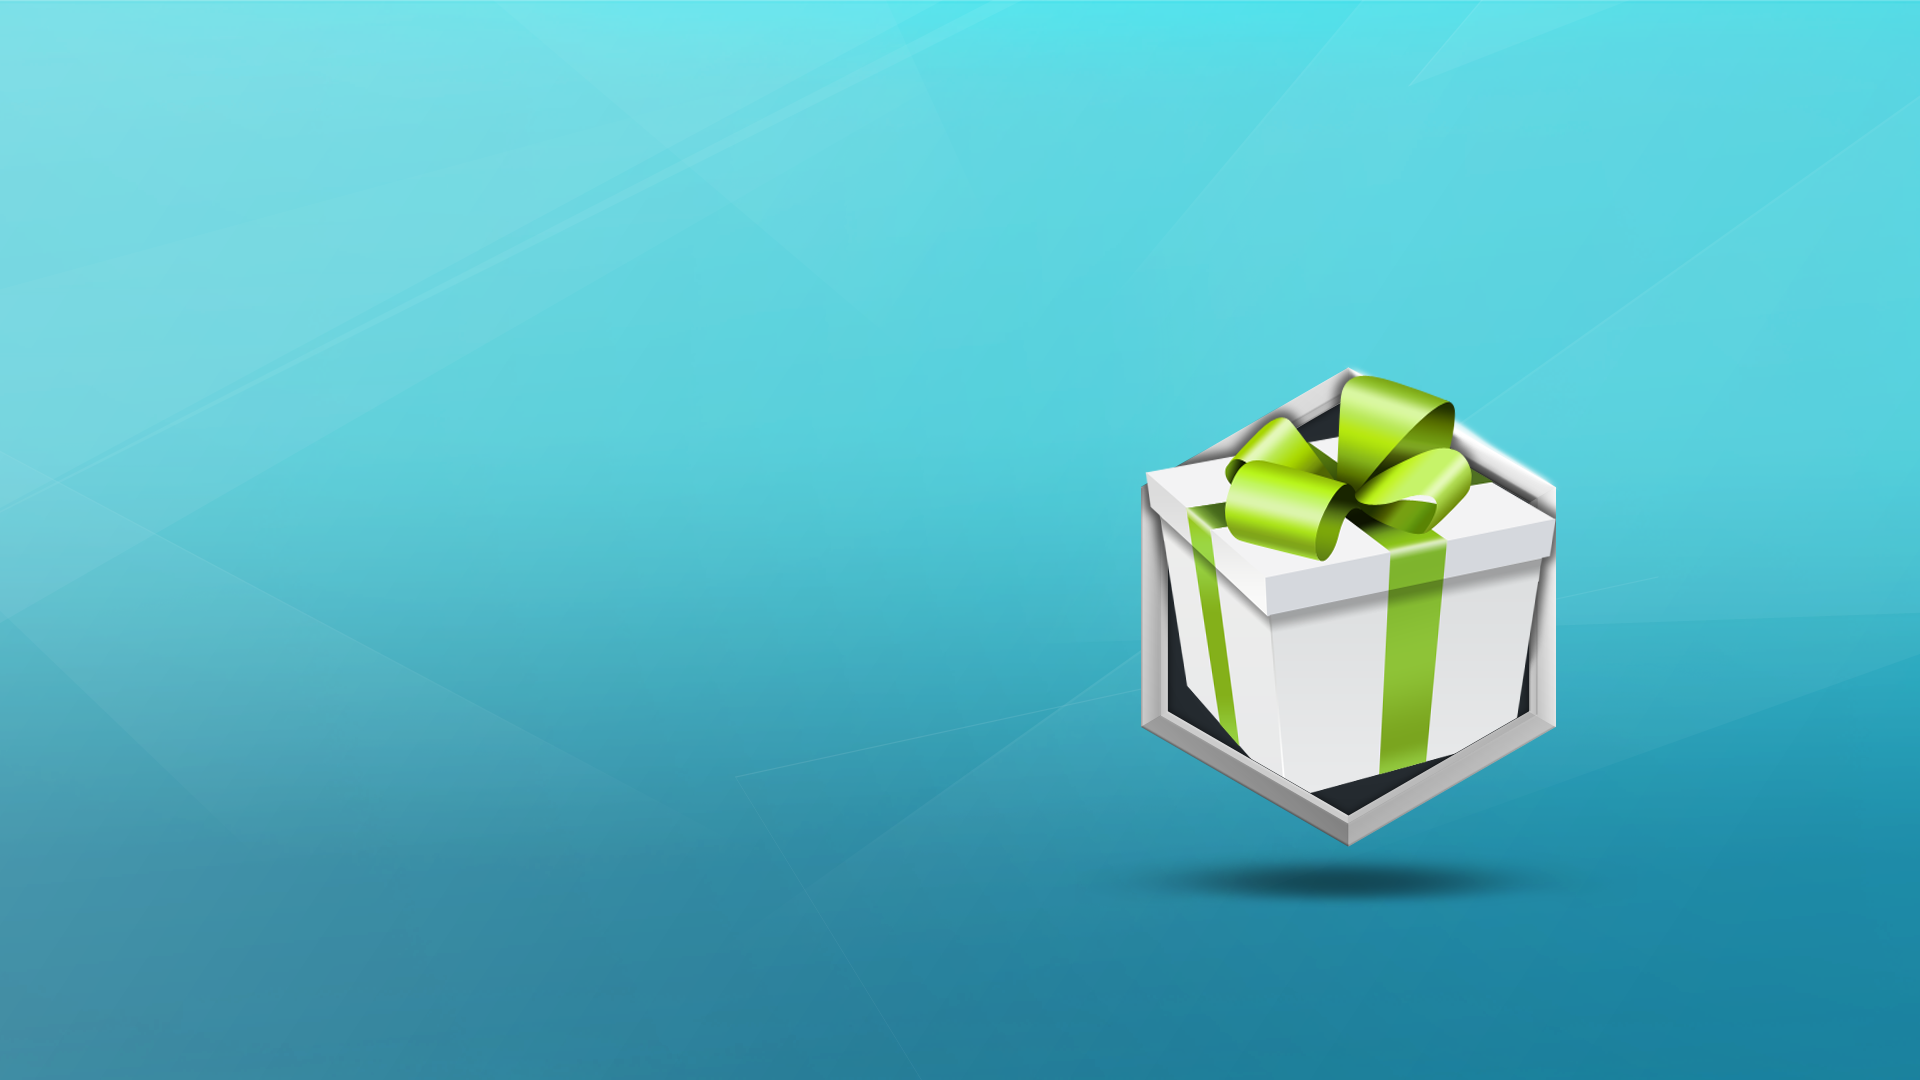 Icon for Giving back